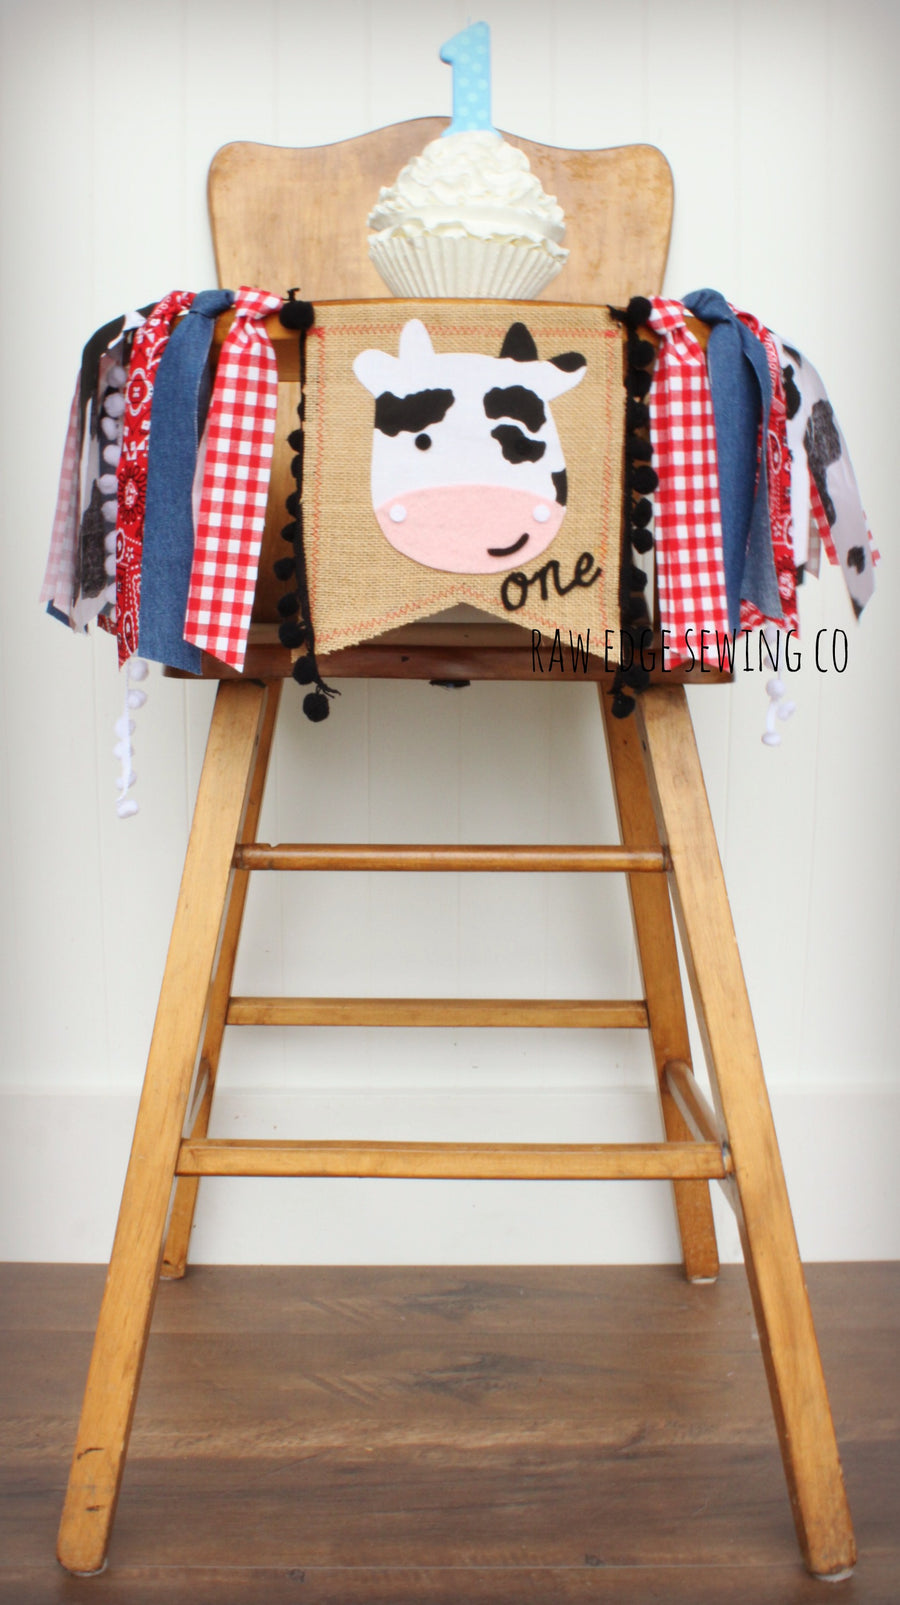 Twins Farm Highchair Banner 1st Birthday Party Decoration - Raw Edge Sewing Co